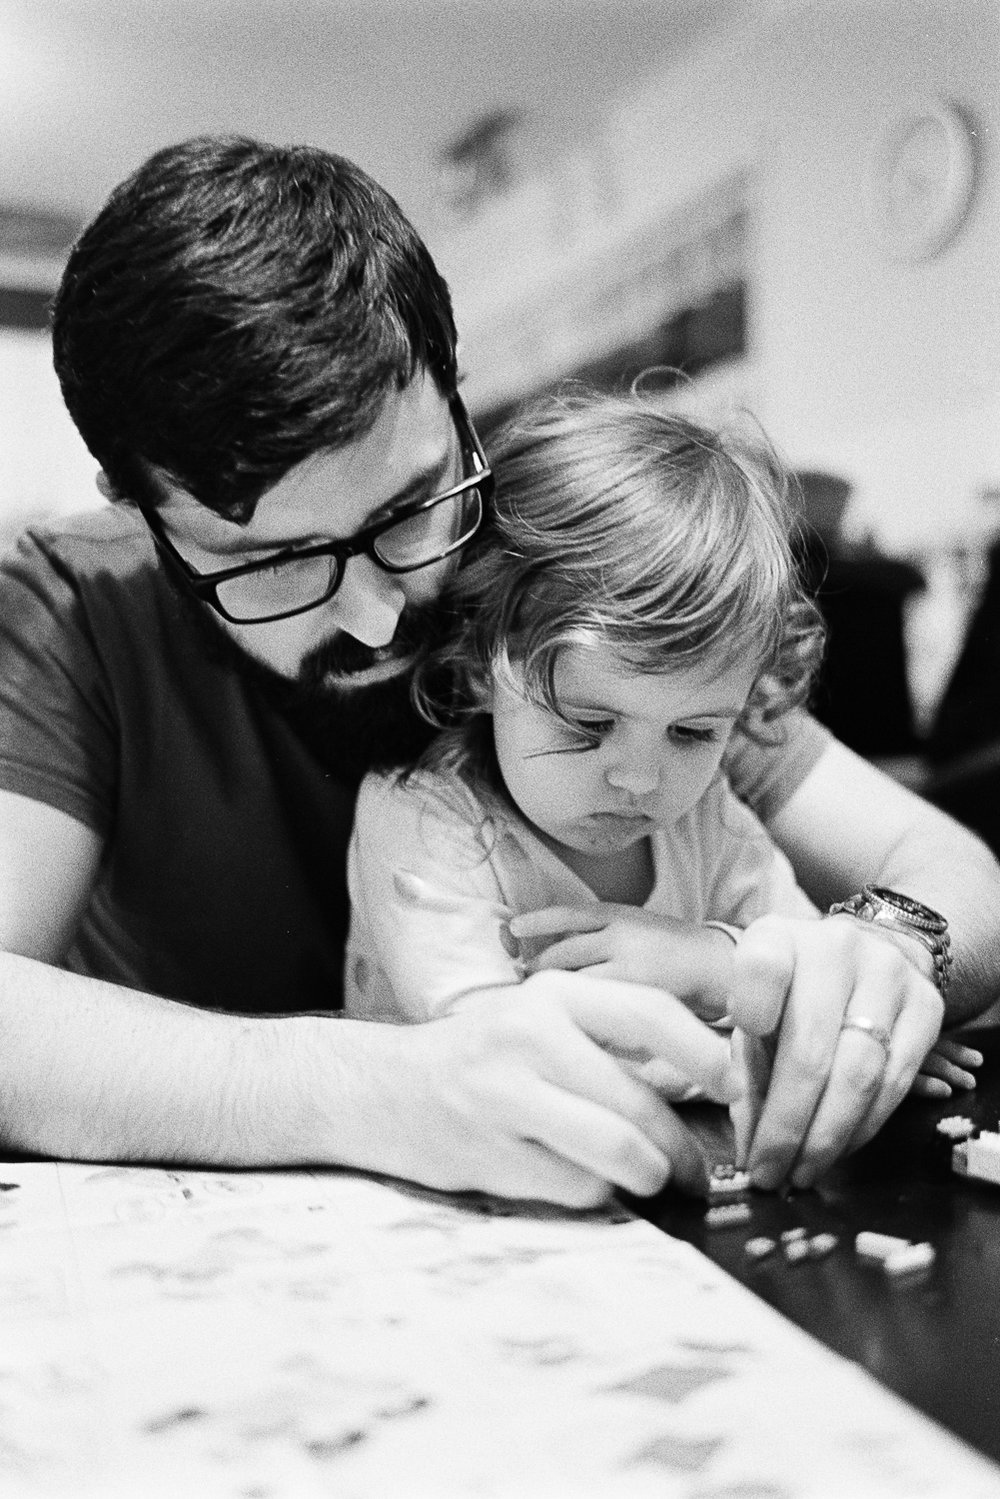 Building stuff with dad.